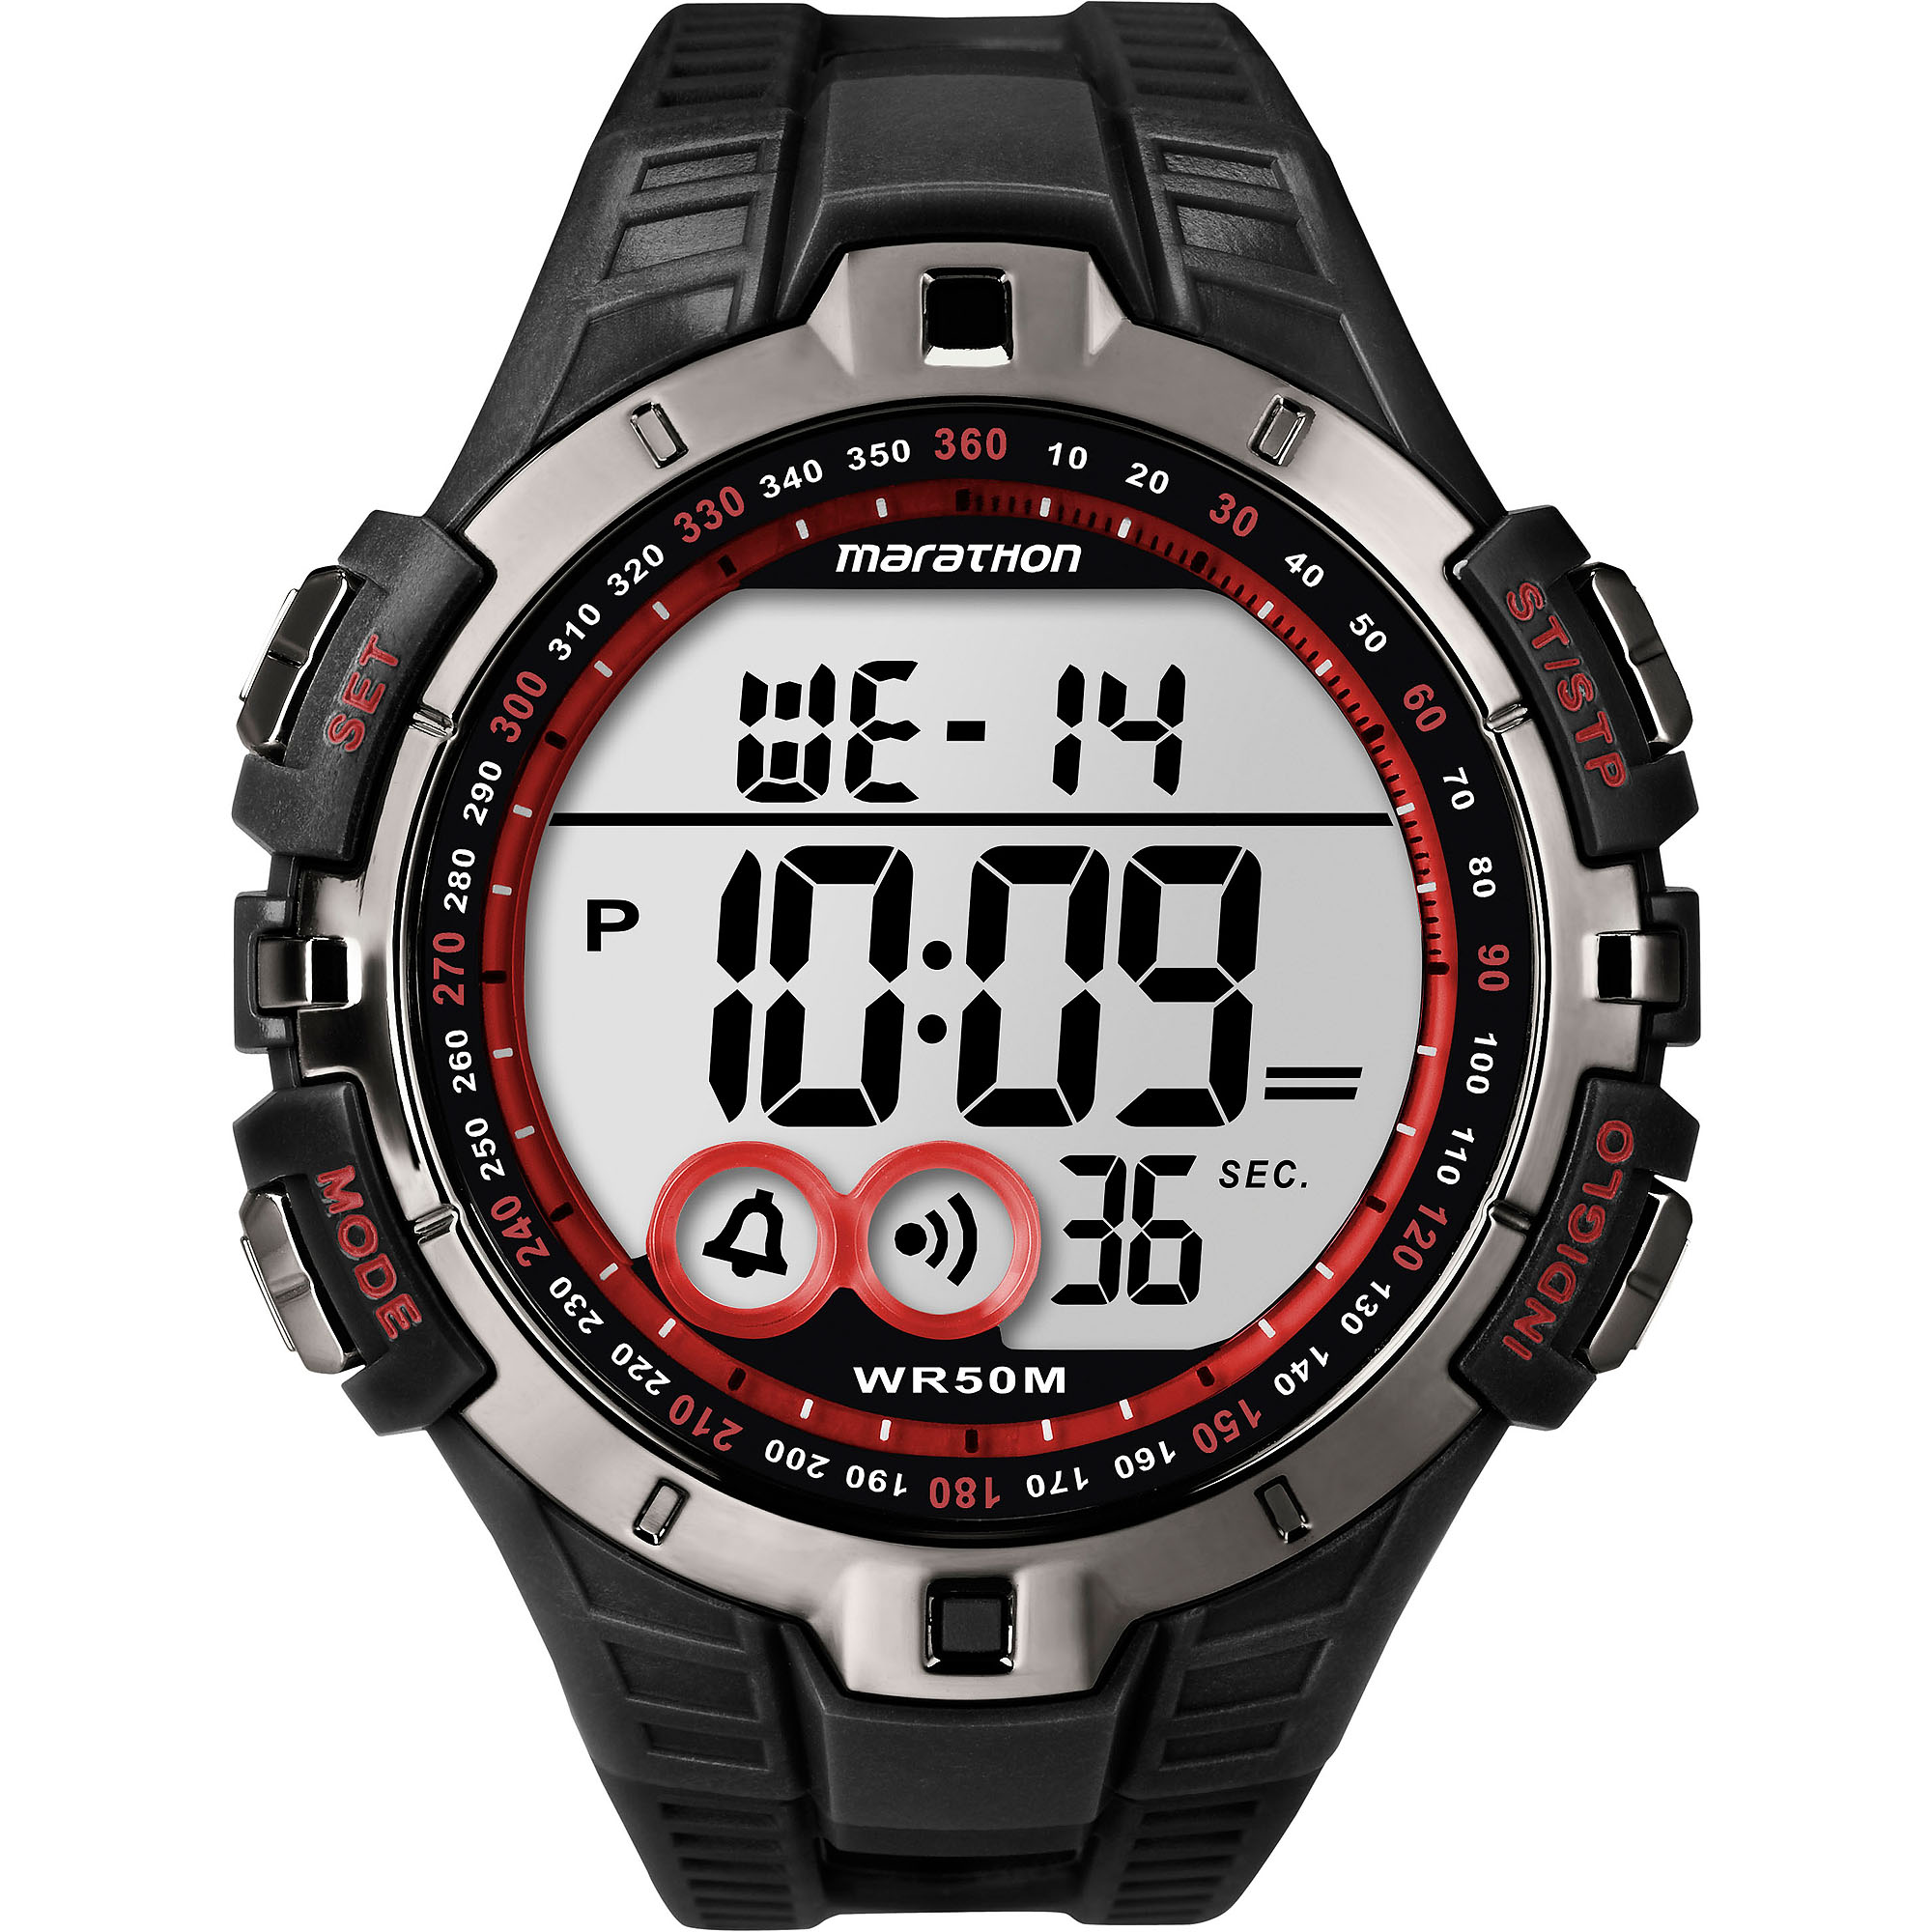 water maintenance waterproof resistance watches after time watch repair testing